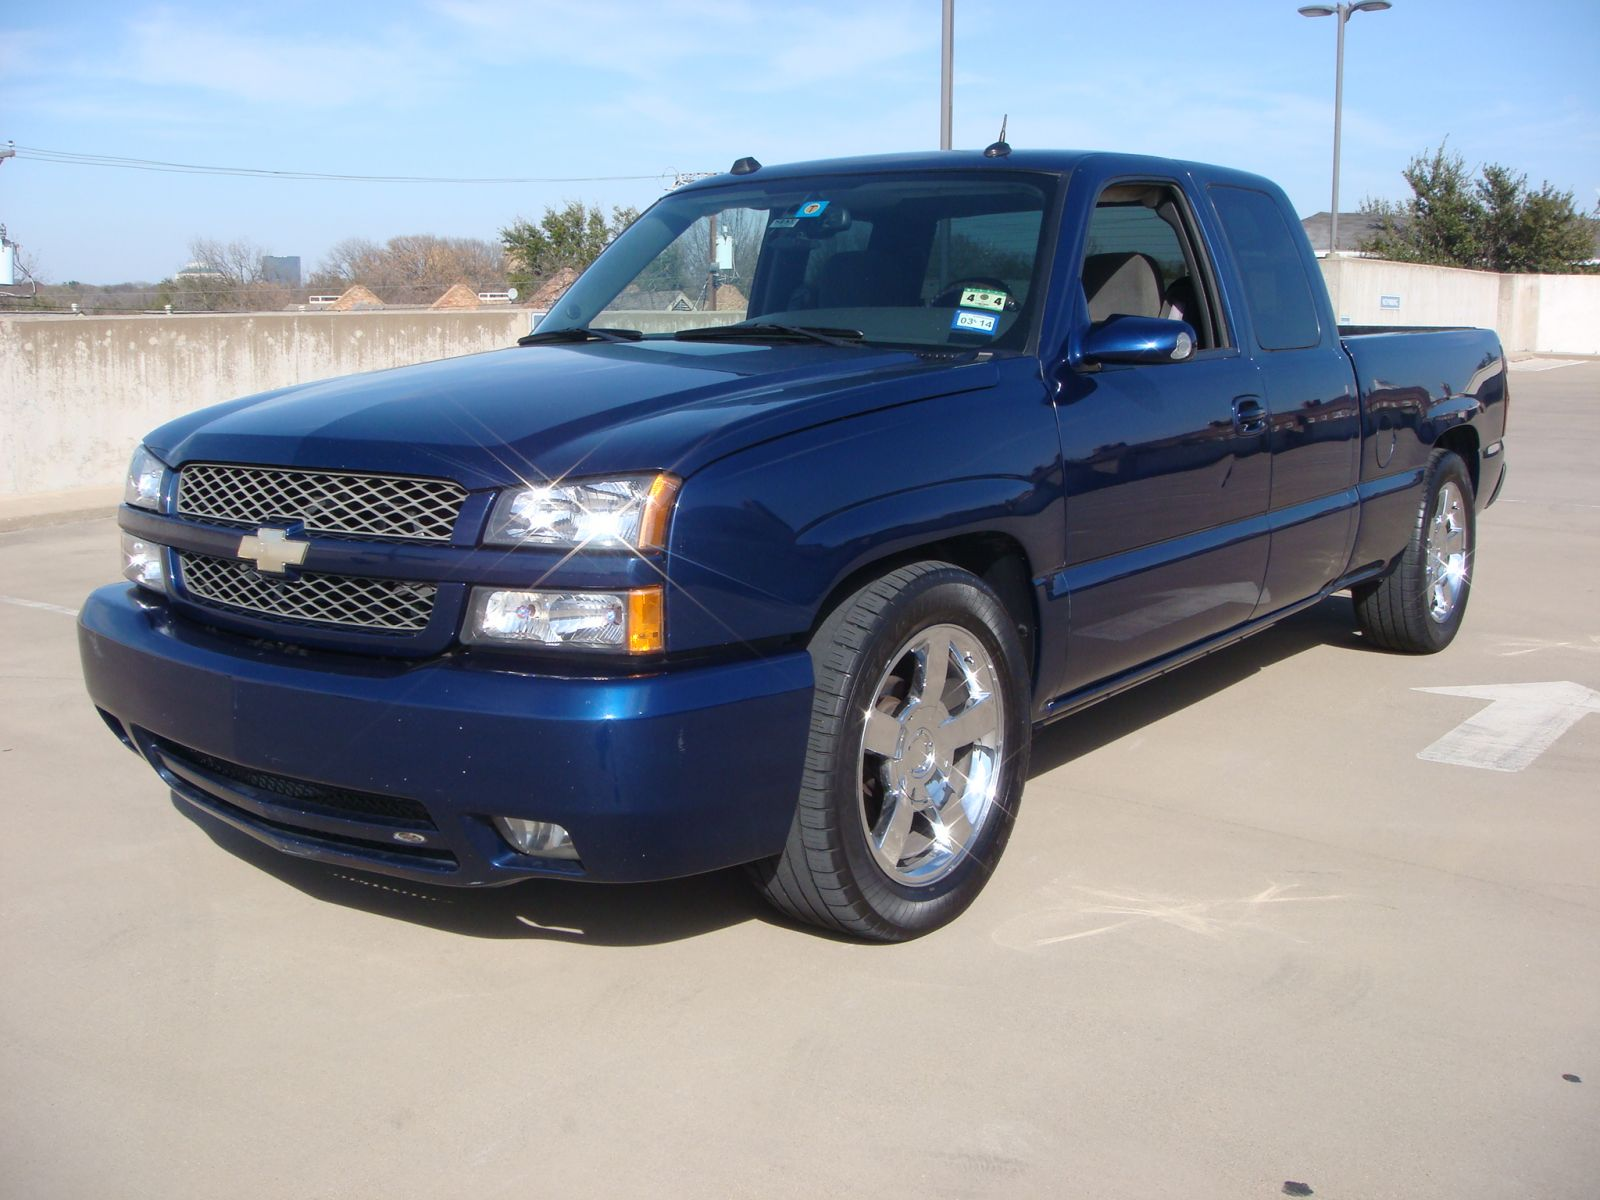 2004 silverado ls with joe gibbs front exterior. Black Bedroom Furniture Sets. Home Design Ideas